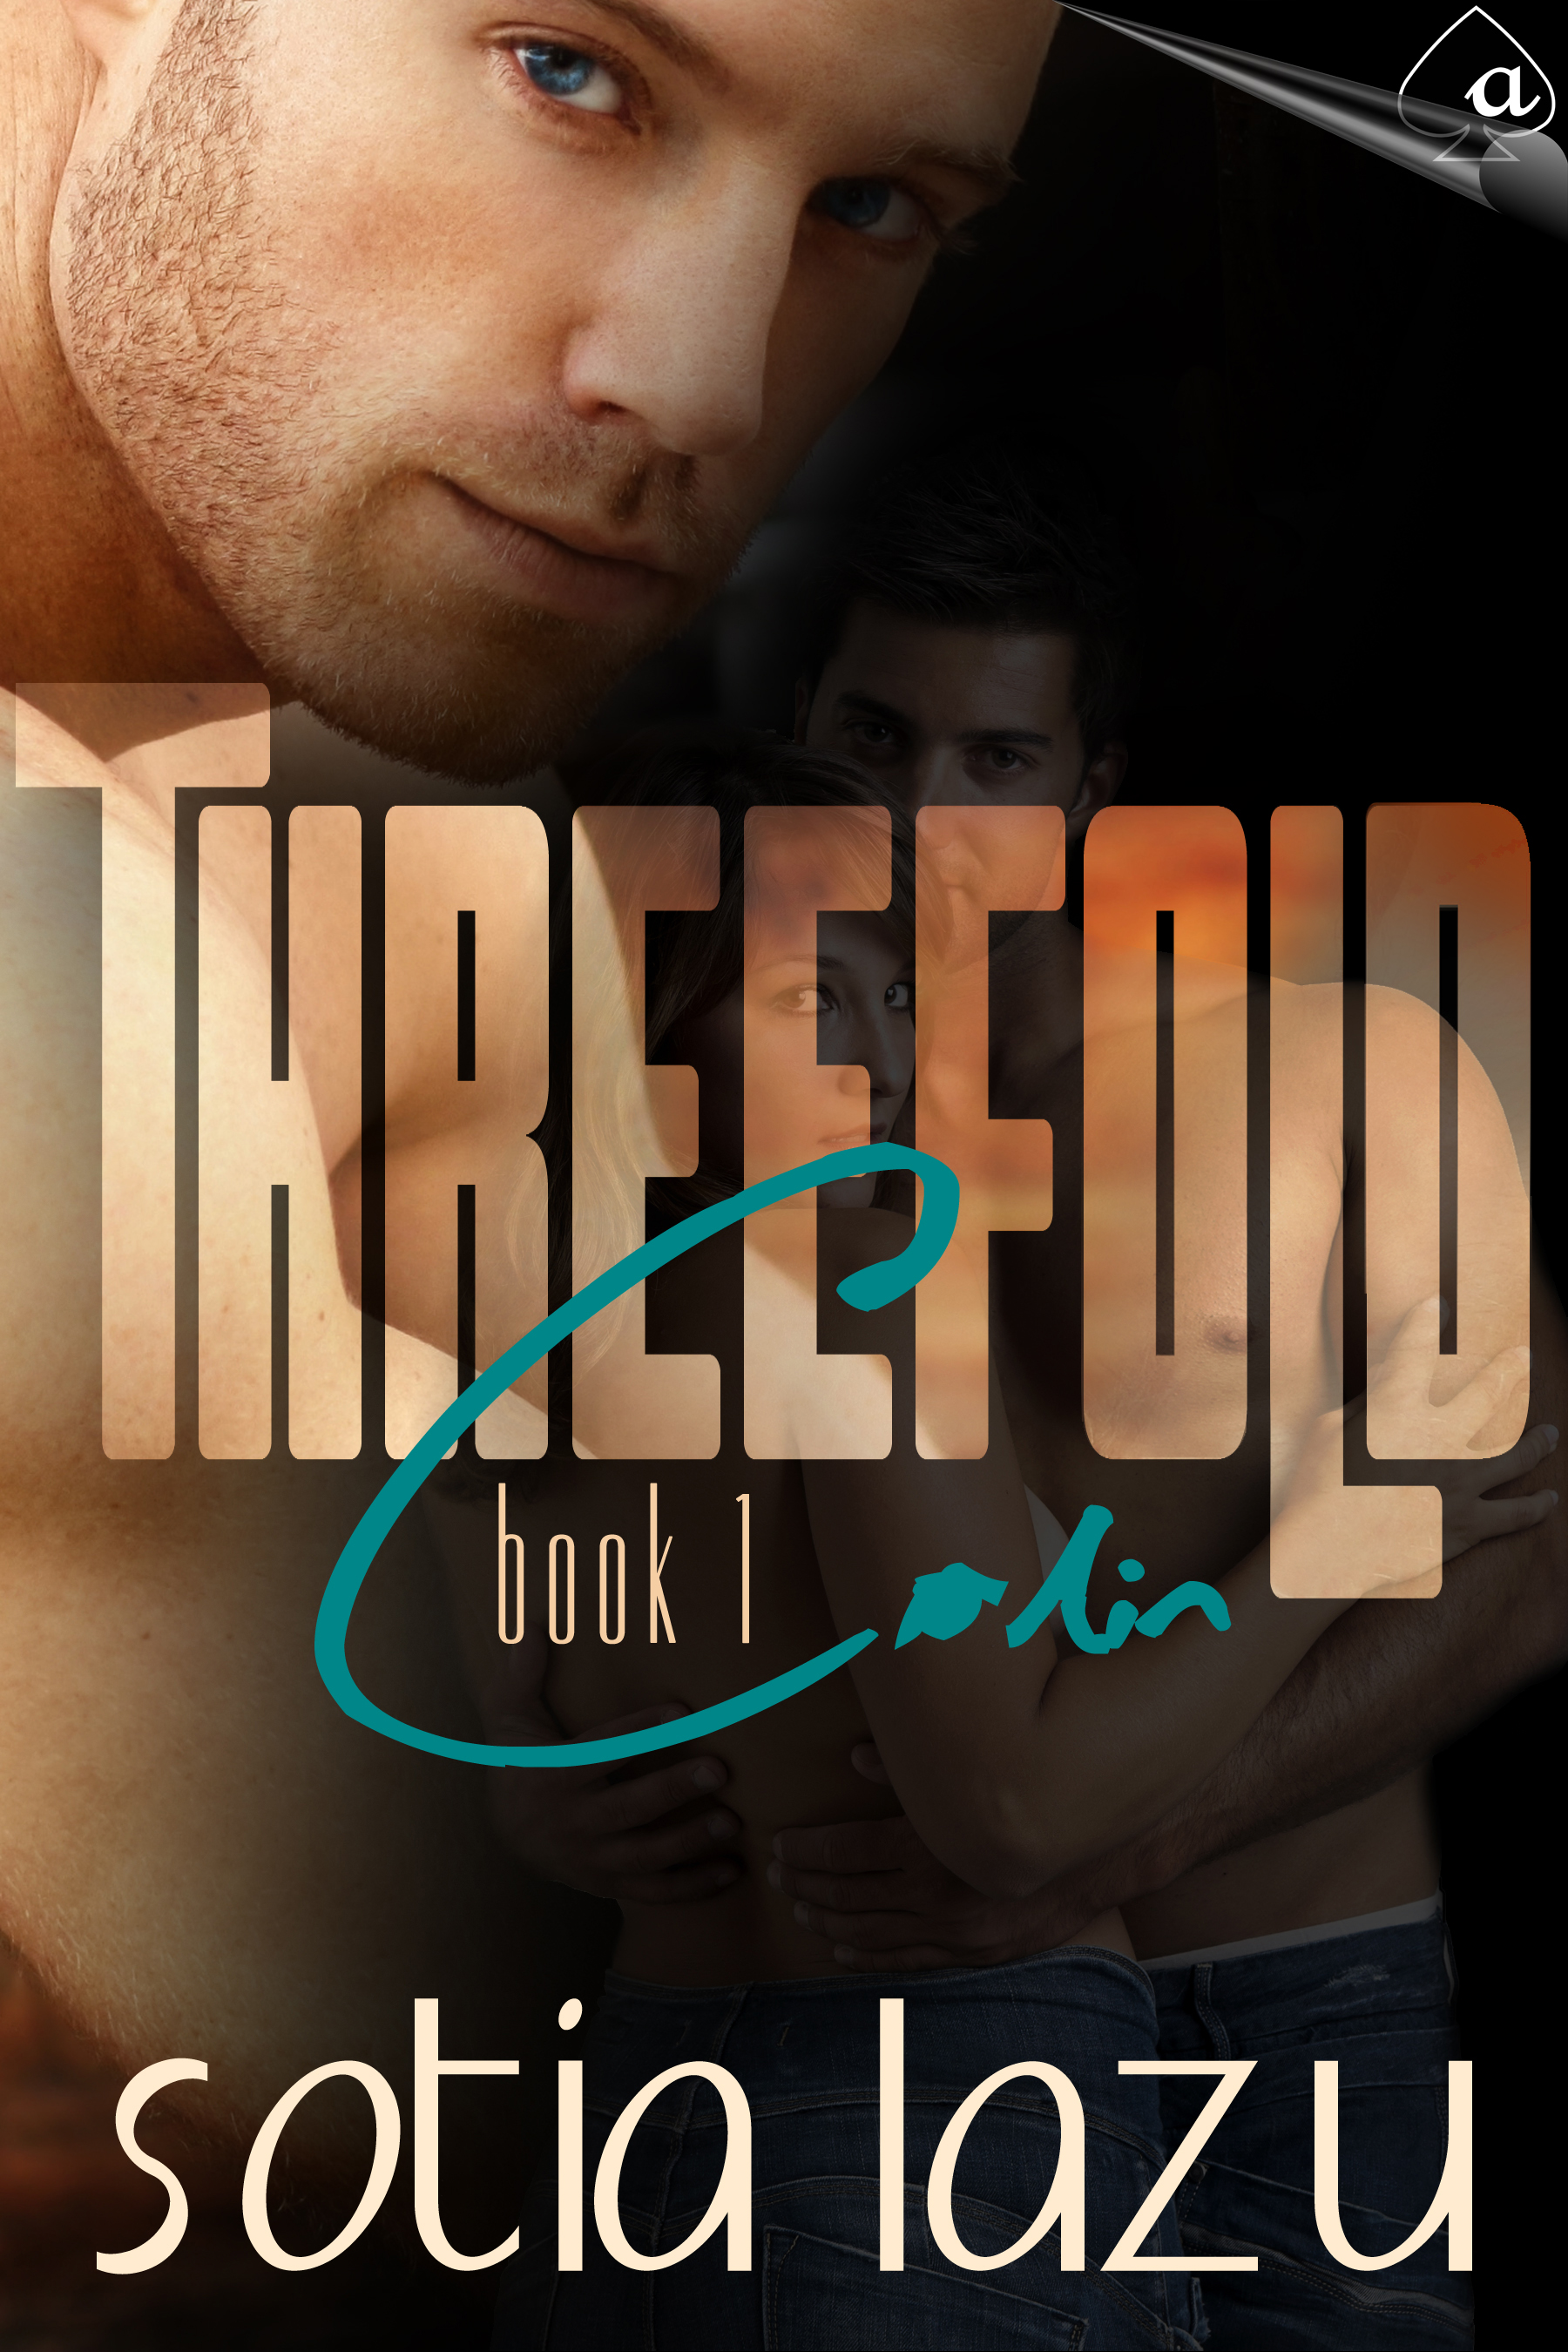 Colin - Threefold, Book 1